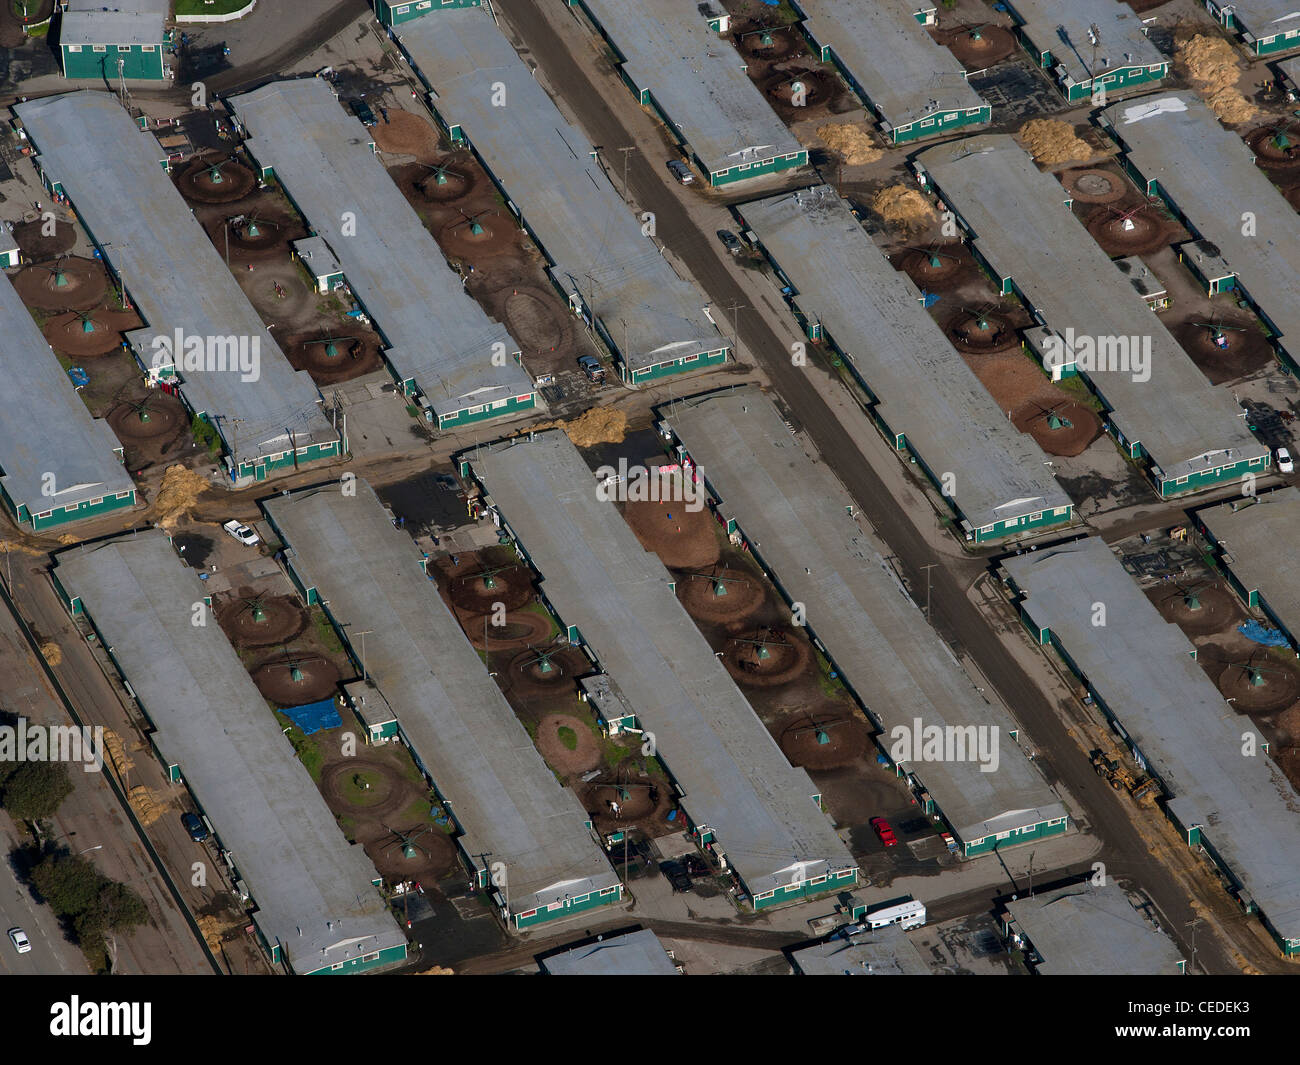 aerial photograph horse race track stables Golden Gate Fields Albany California - Stock Image